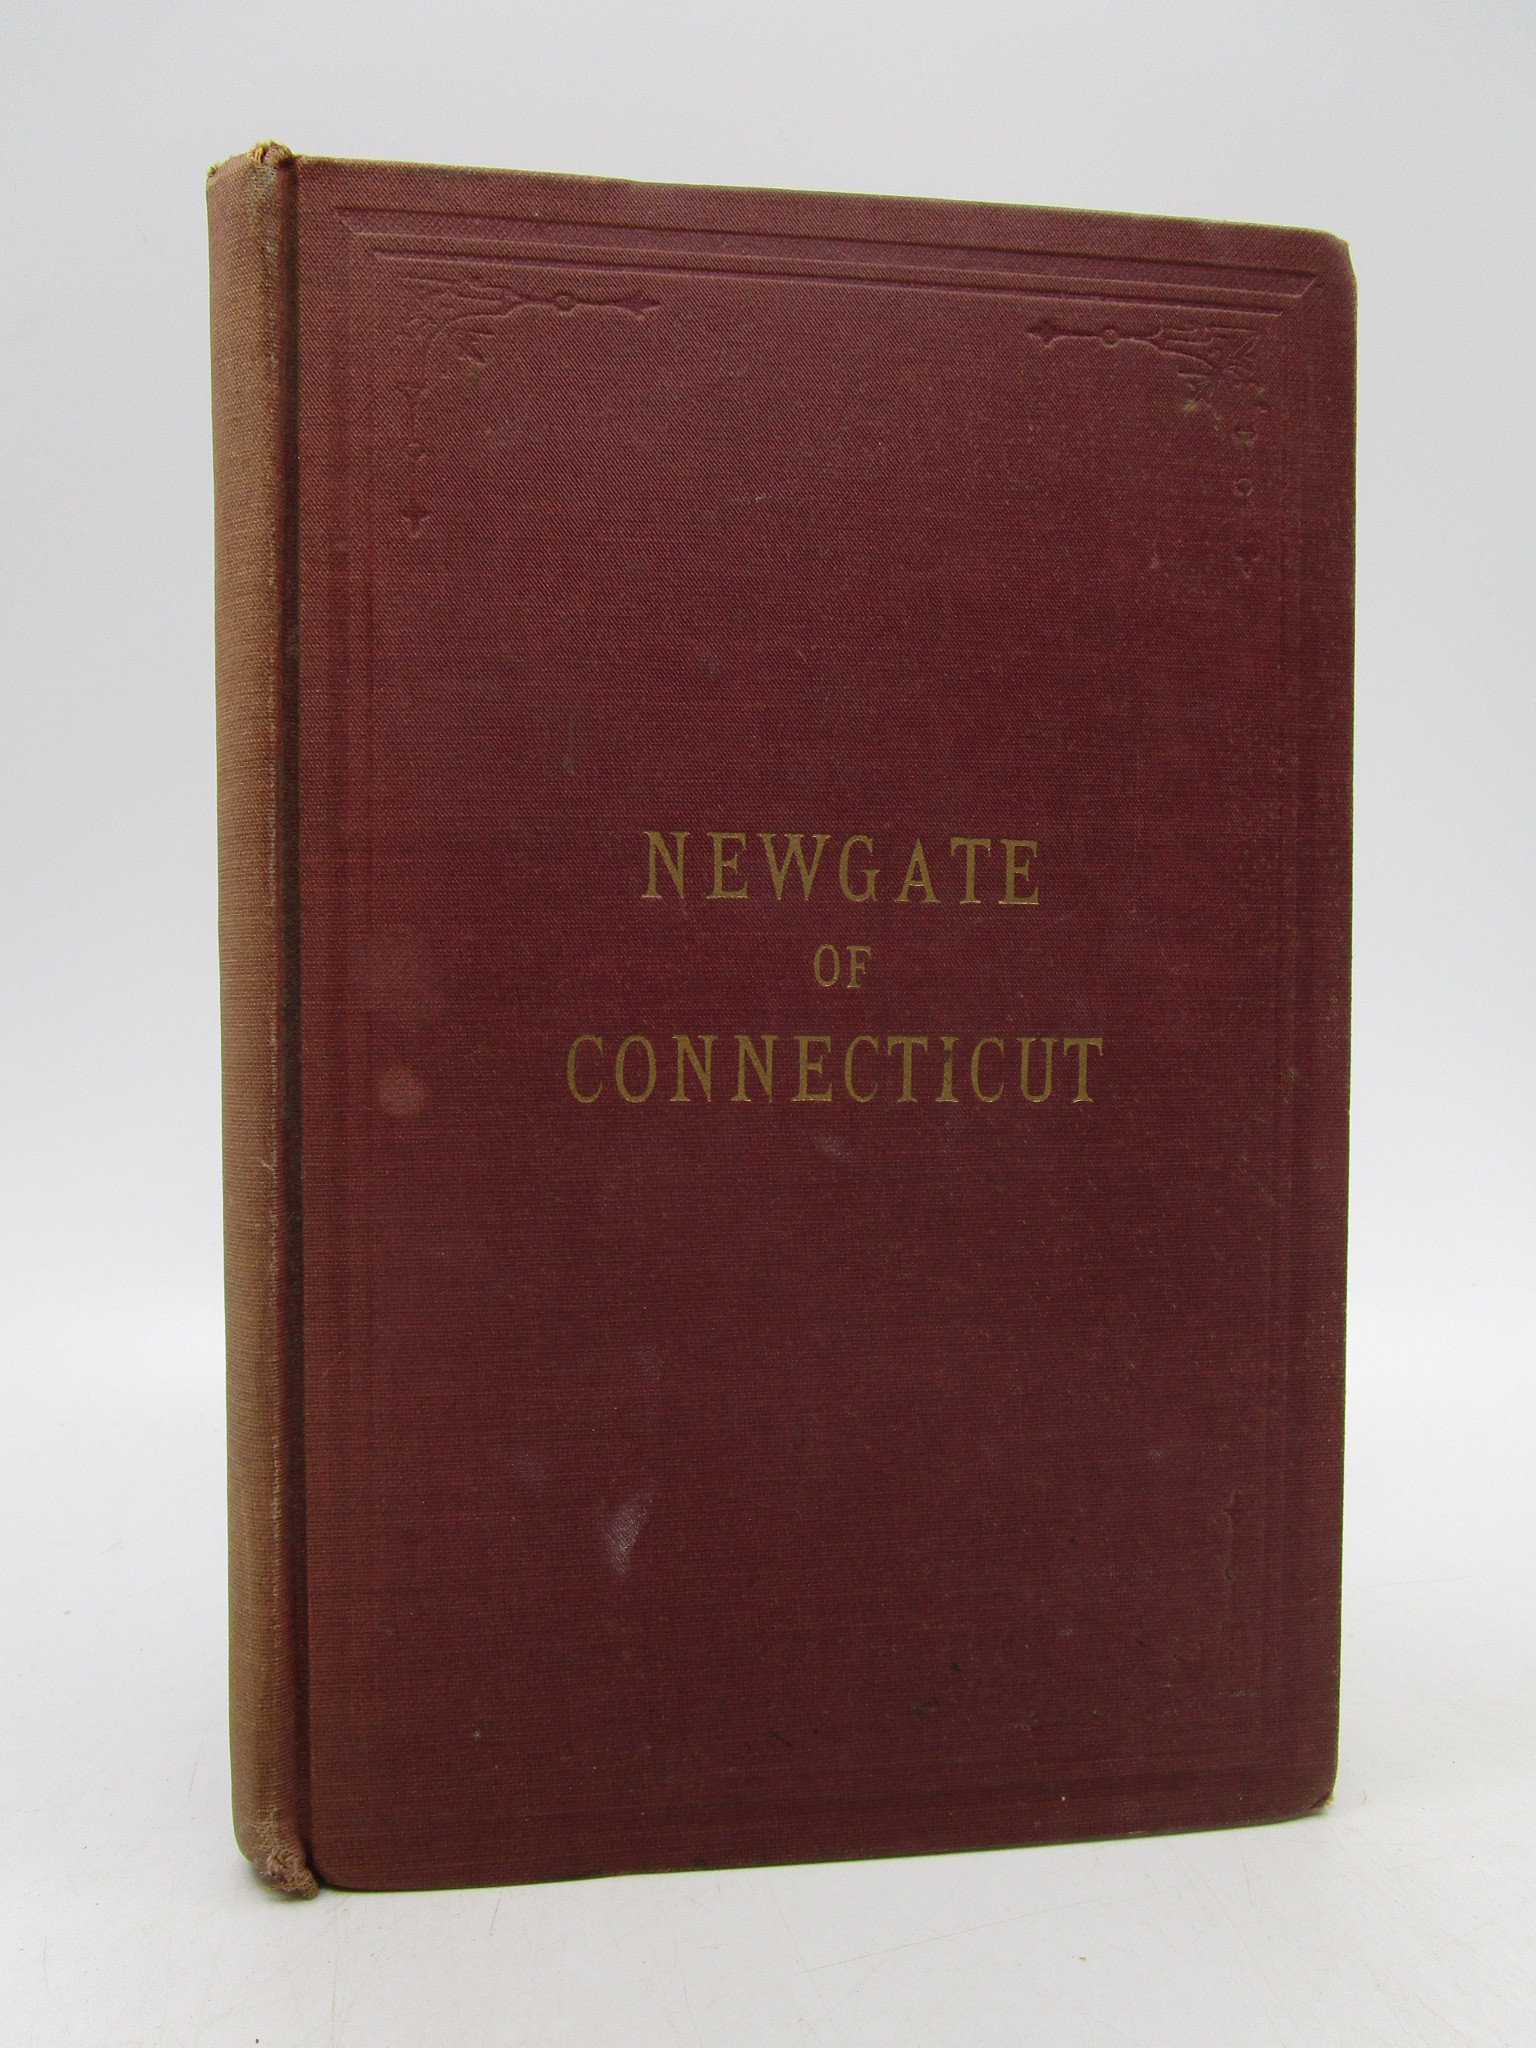 Image for Newgate of Connecticut: Its Origin and Early History, being a full description of the famous adn wodnerful Simsbury Mines and Caverns and the Prison built over them. Also An Illustrated Description of the State Prison at Wethersfield